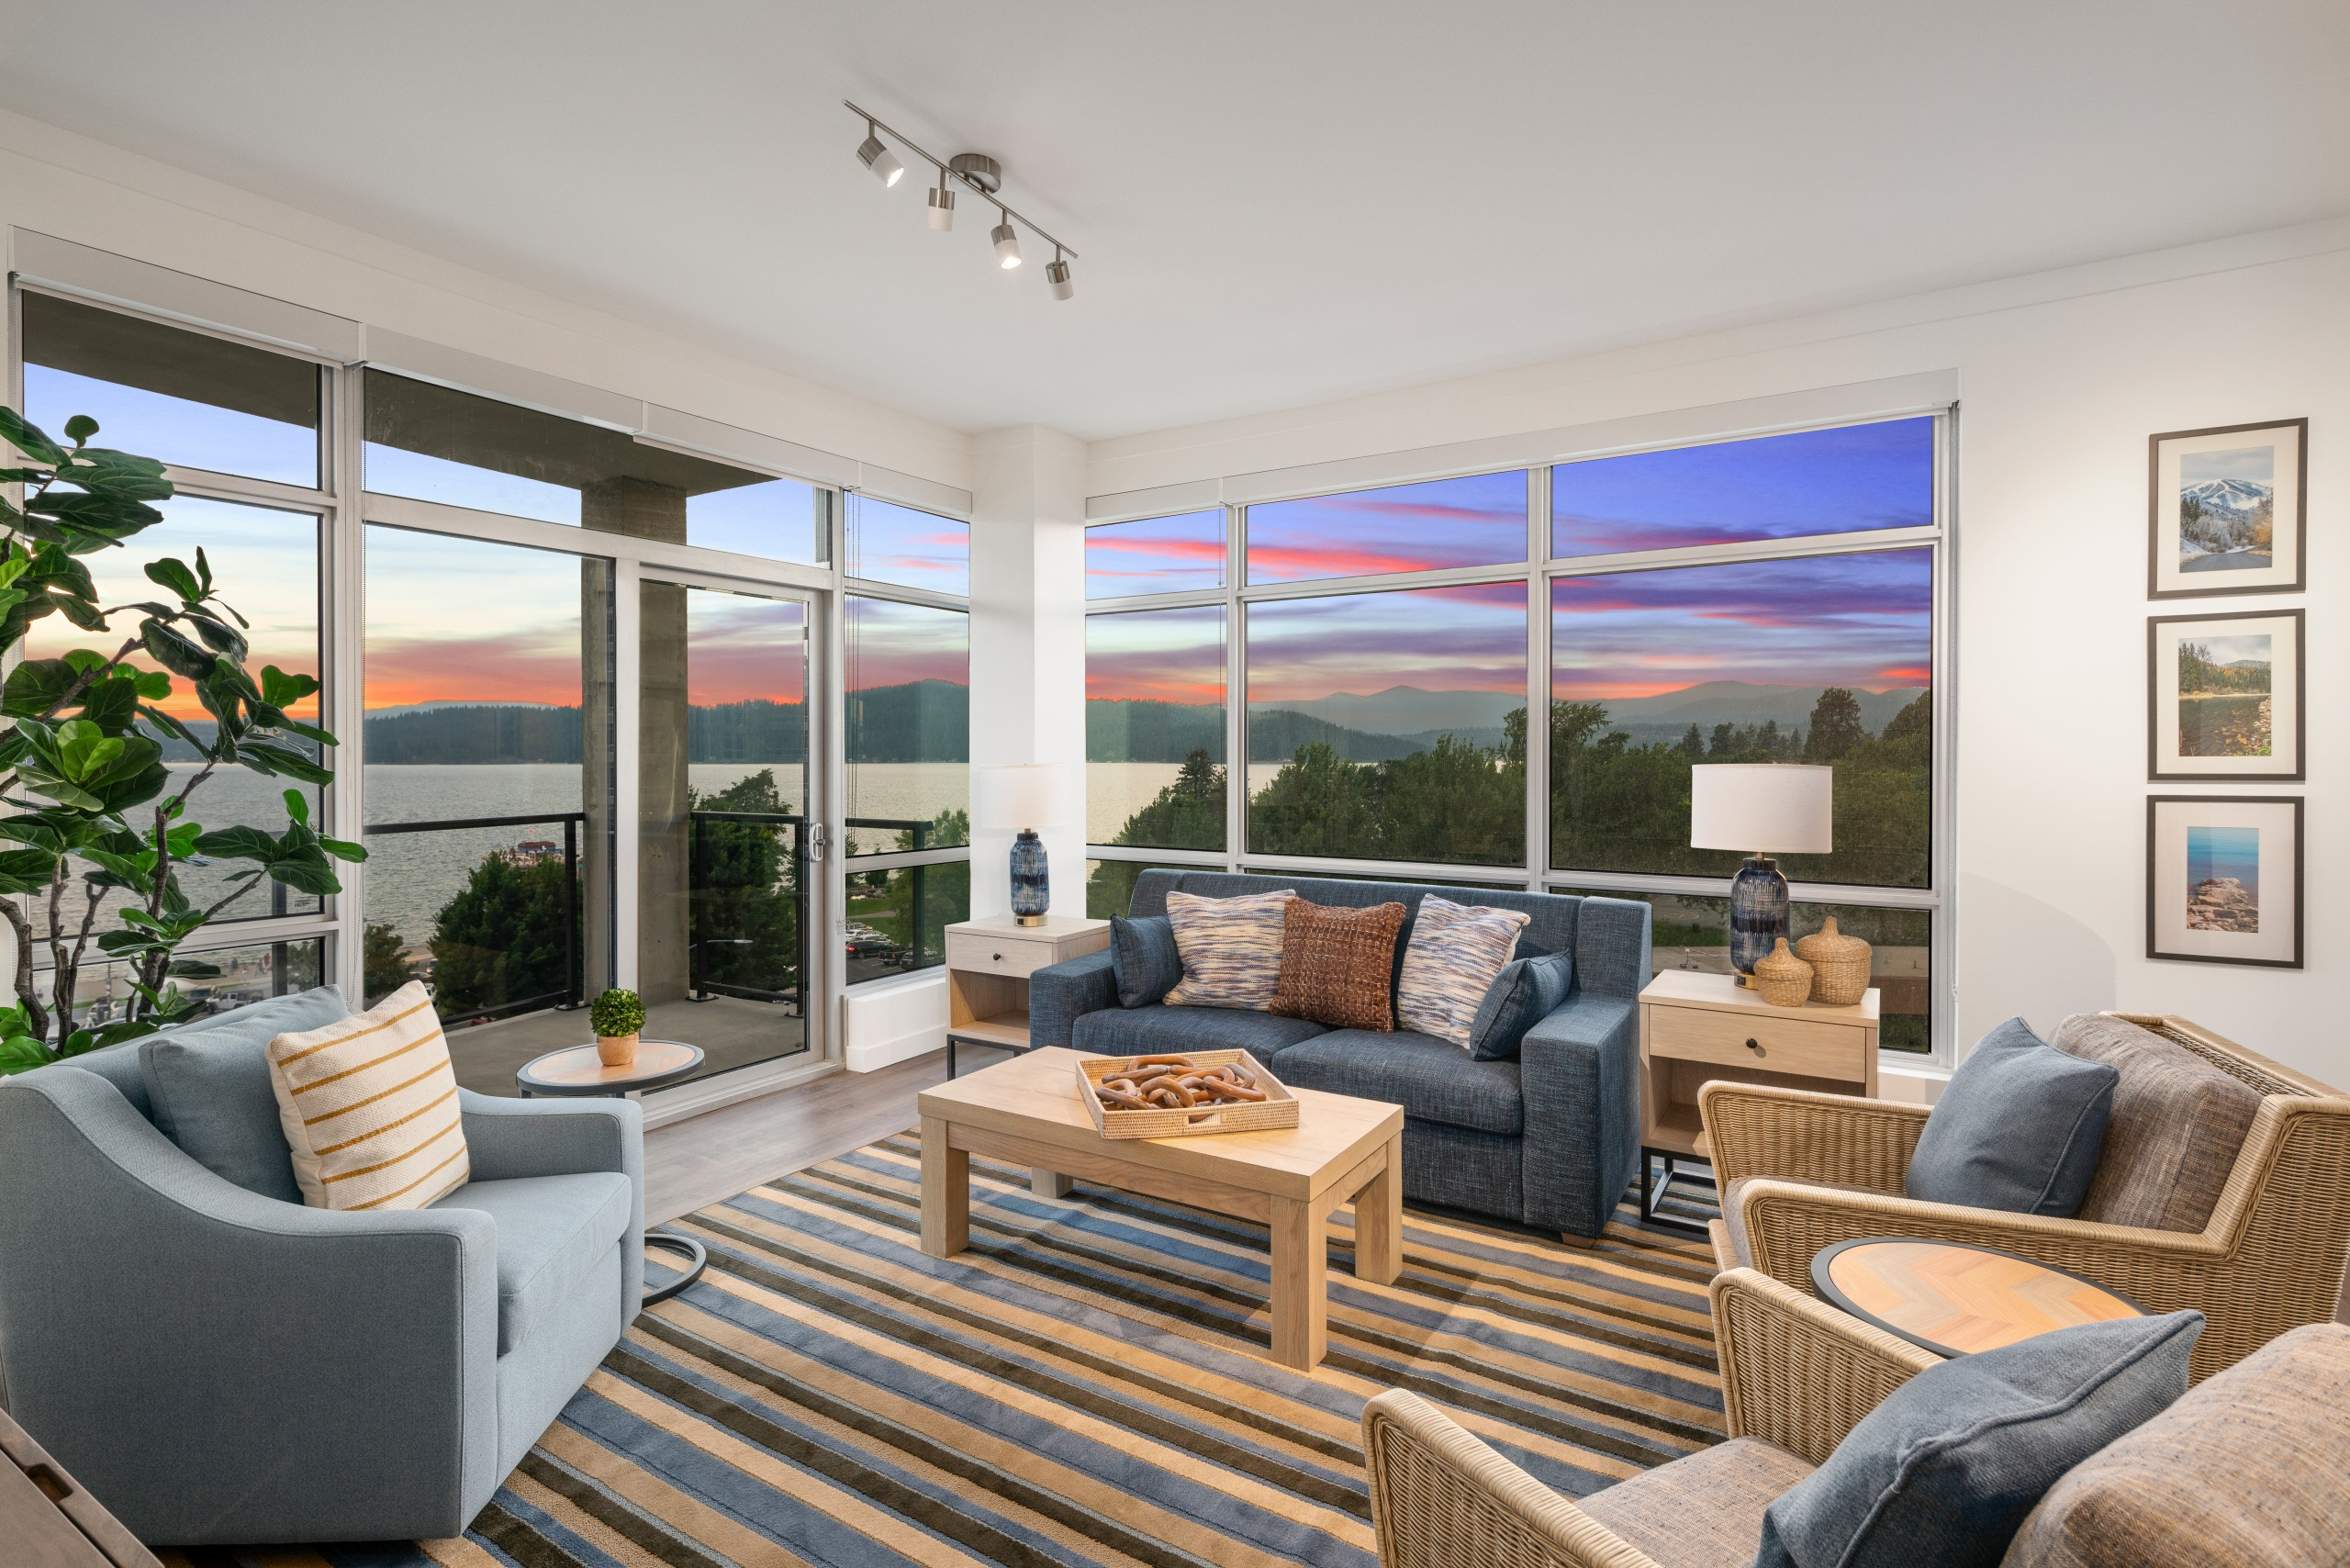 Rlmillerphoto One Lakeside 601 3 Bed Premium View17